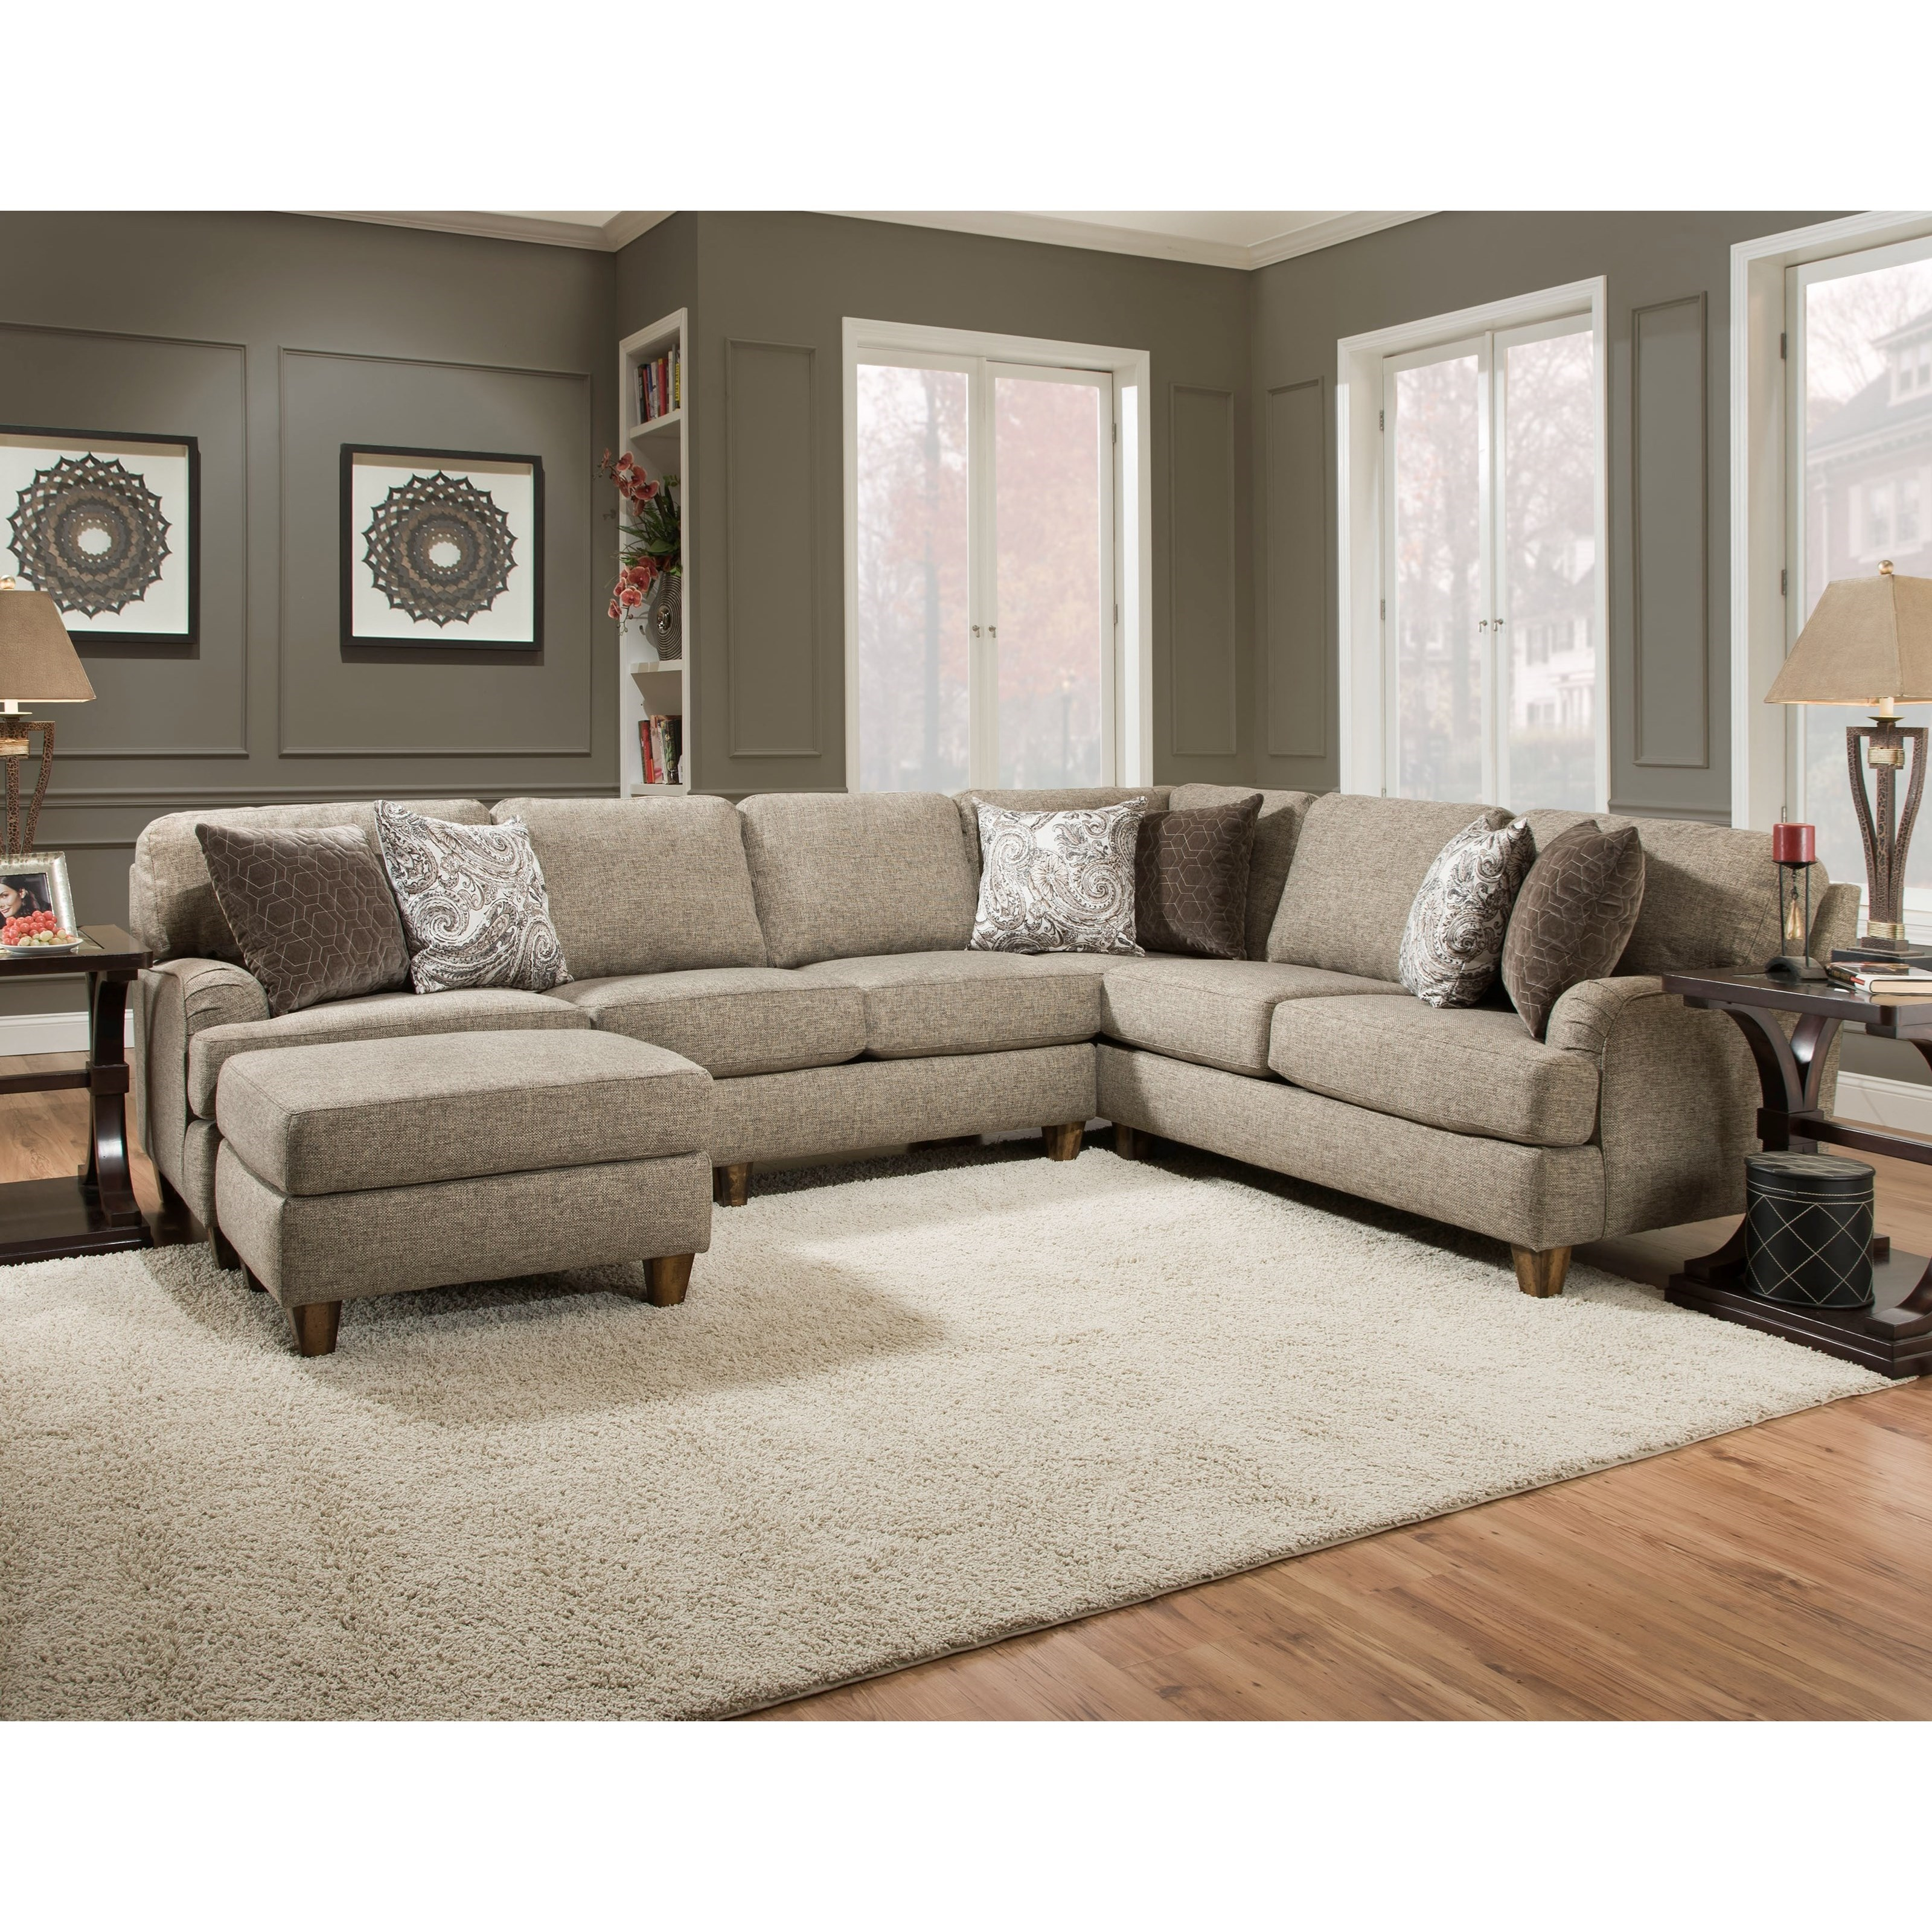 Brannon Sectional Sofa with 5 Seats by Franklin at Wilcox Furniture